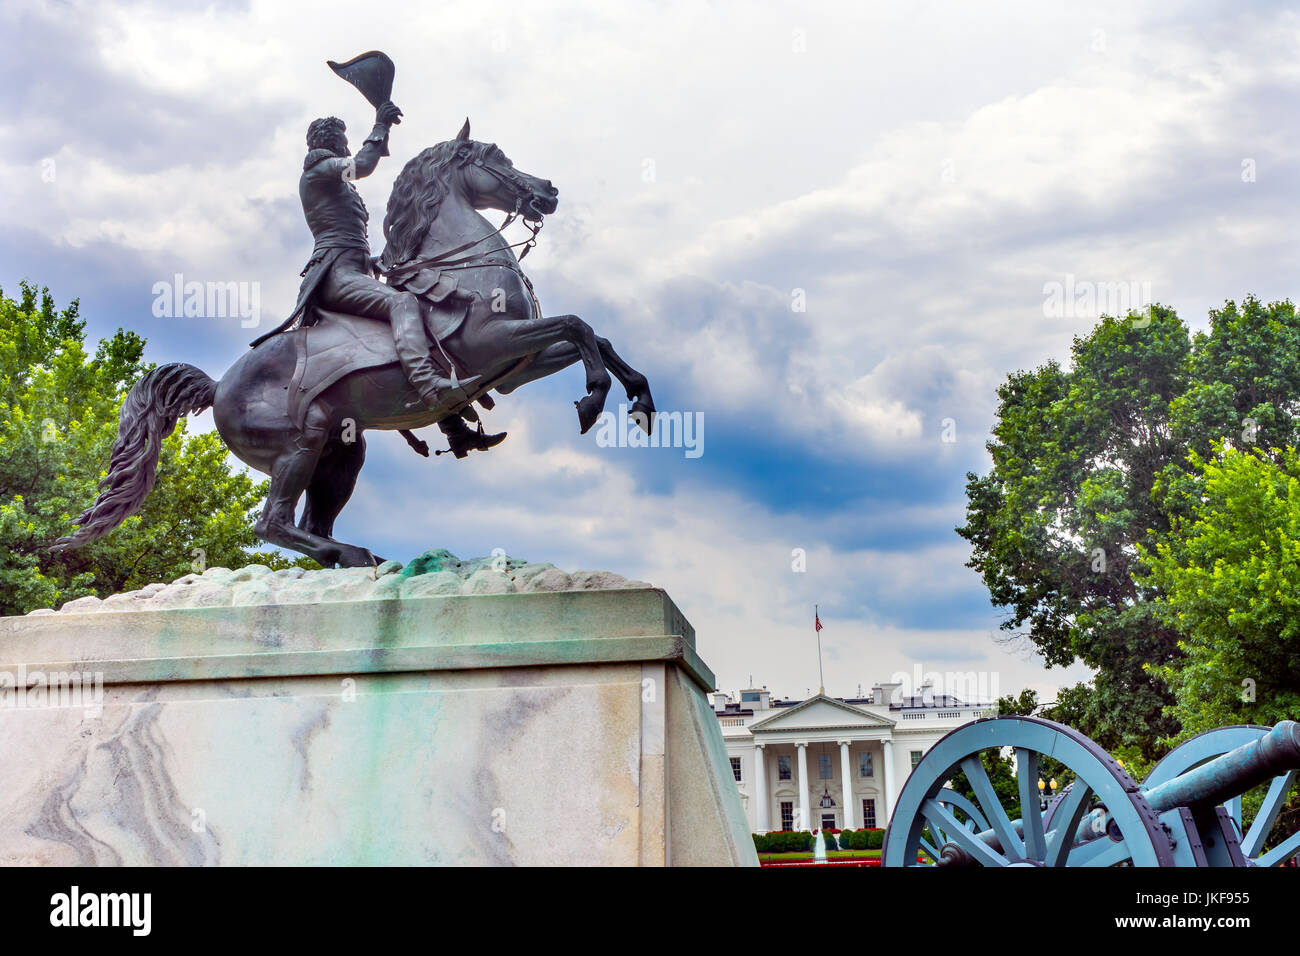 Jackson Statue Lafayette Park White House Pennsylvania Ave Washington DC.  Statue created 1850 Clark Mills Sculptor - Stock Image